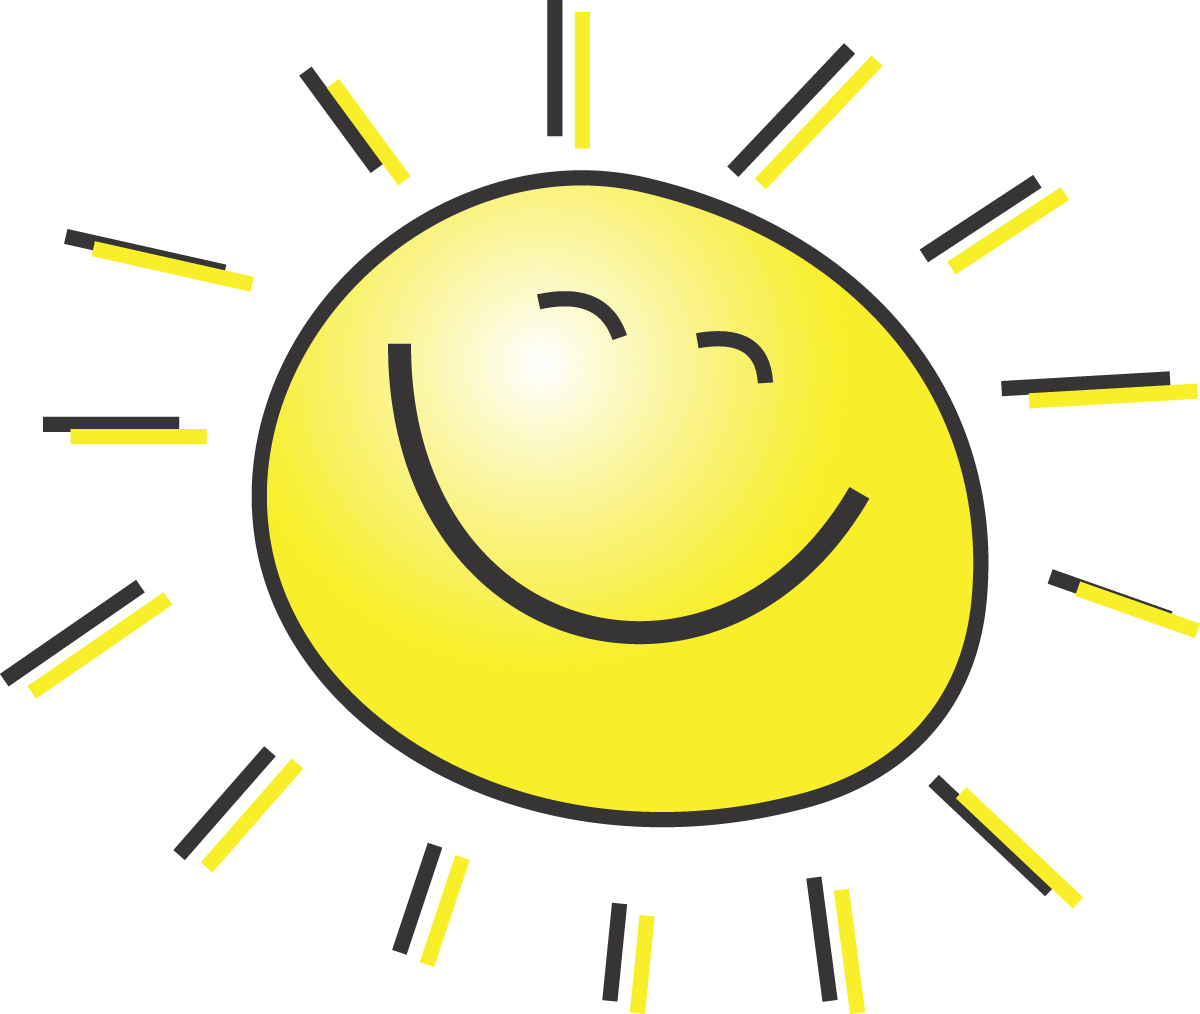 Smiley Sunshine Clip Art - ClipArt Best